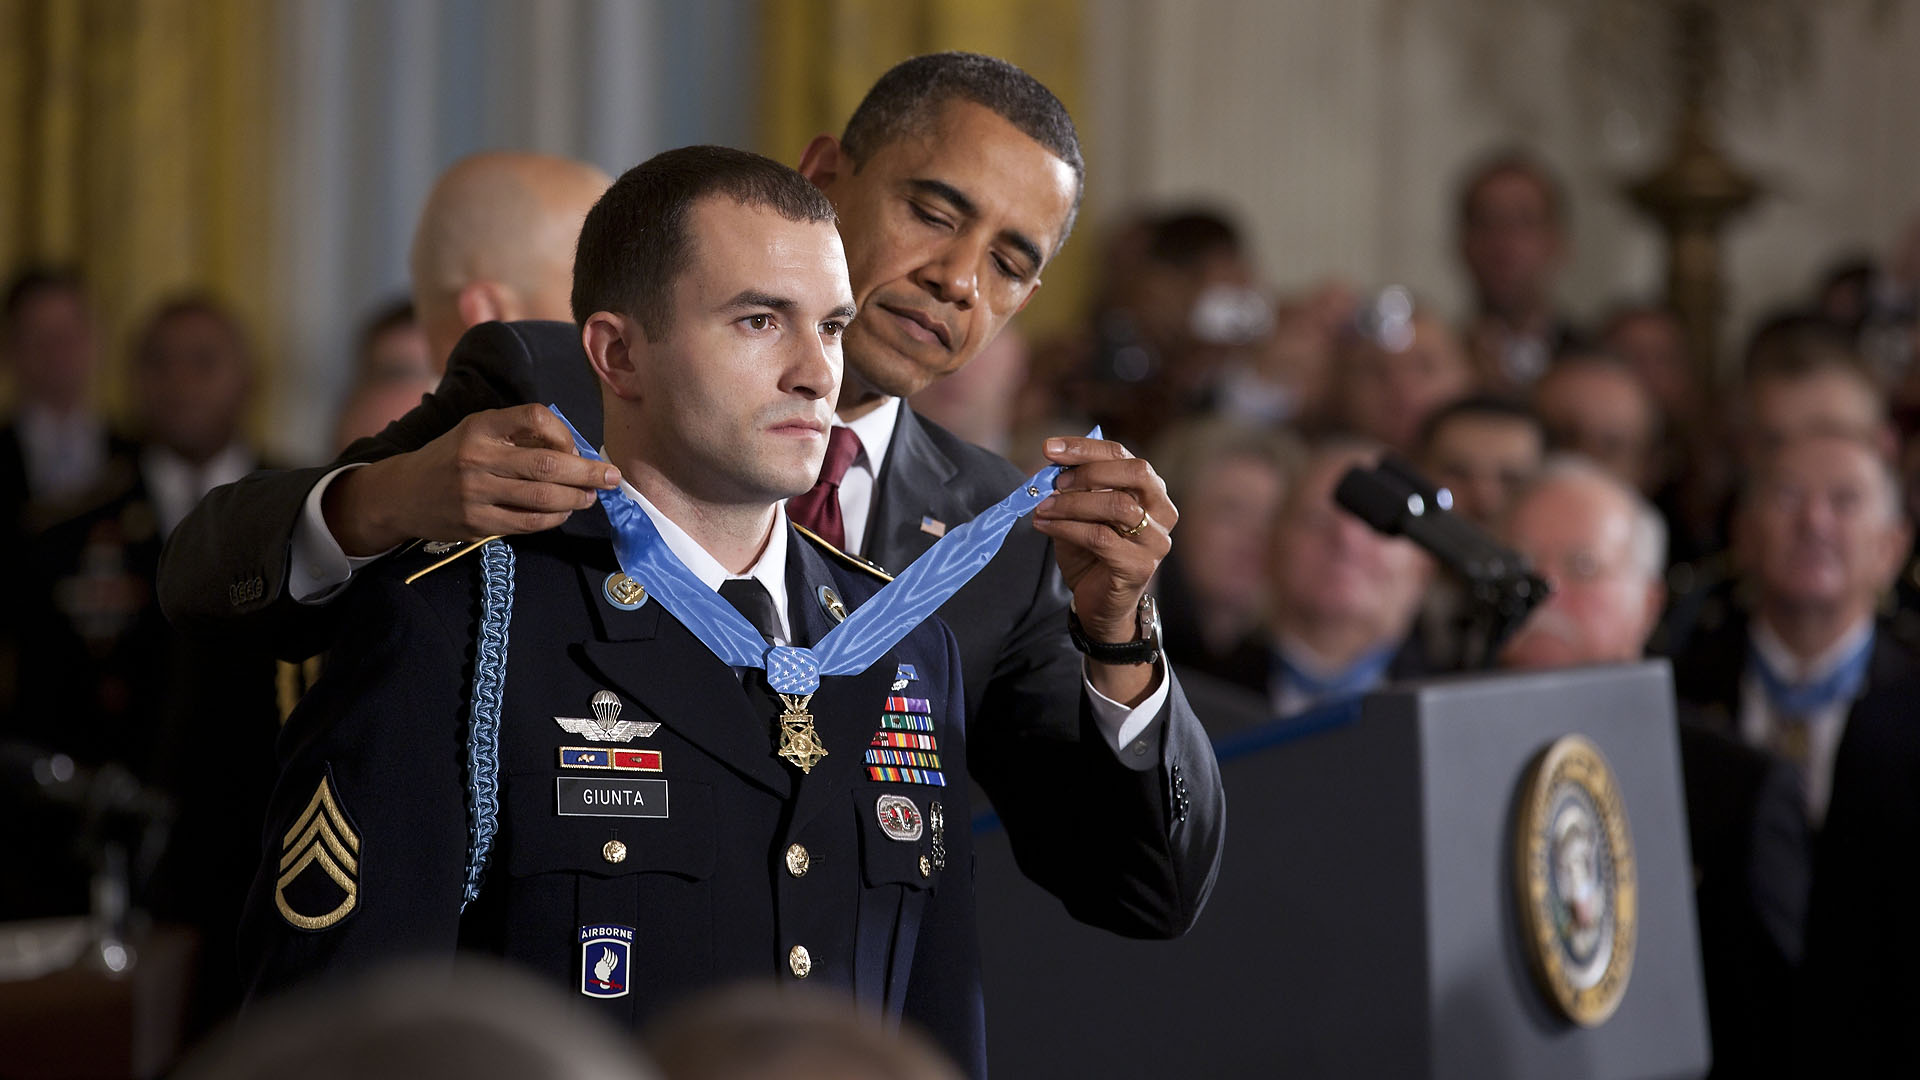 President Barack Obama Presents the Medal of Honor to Staff Sergeant Salvatore Giunta